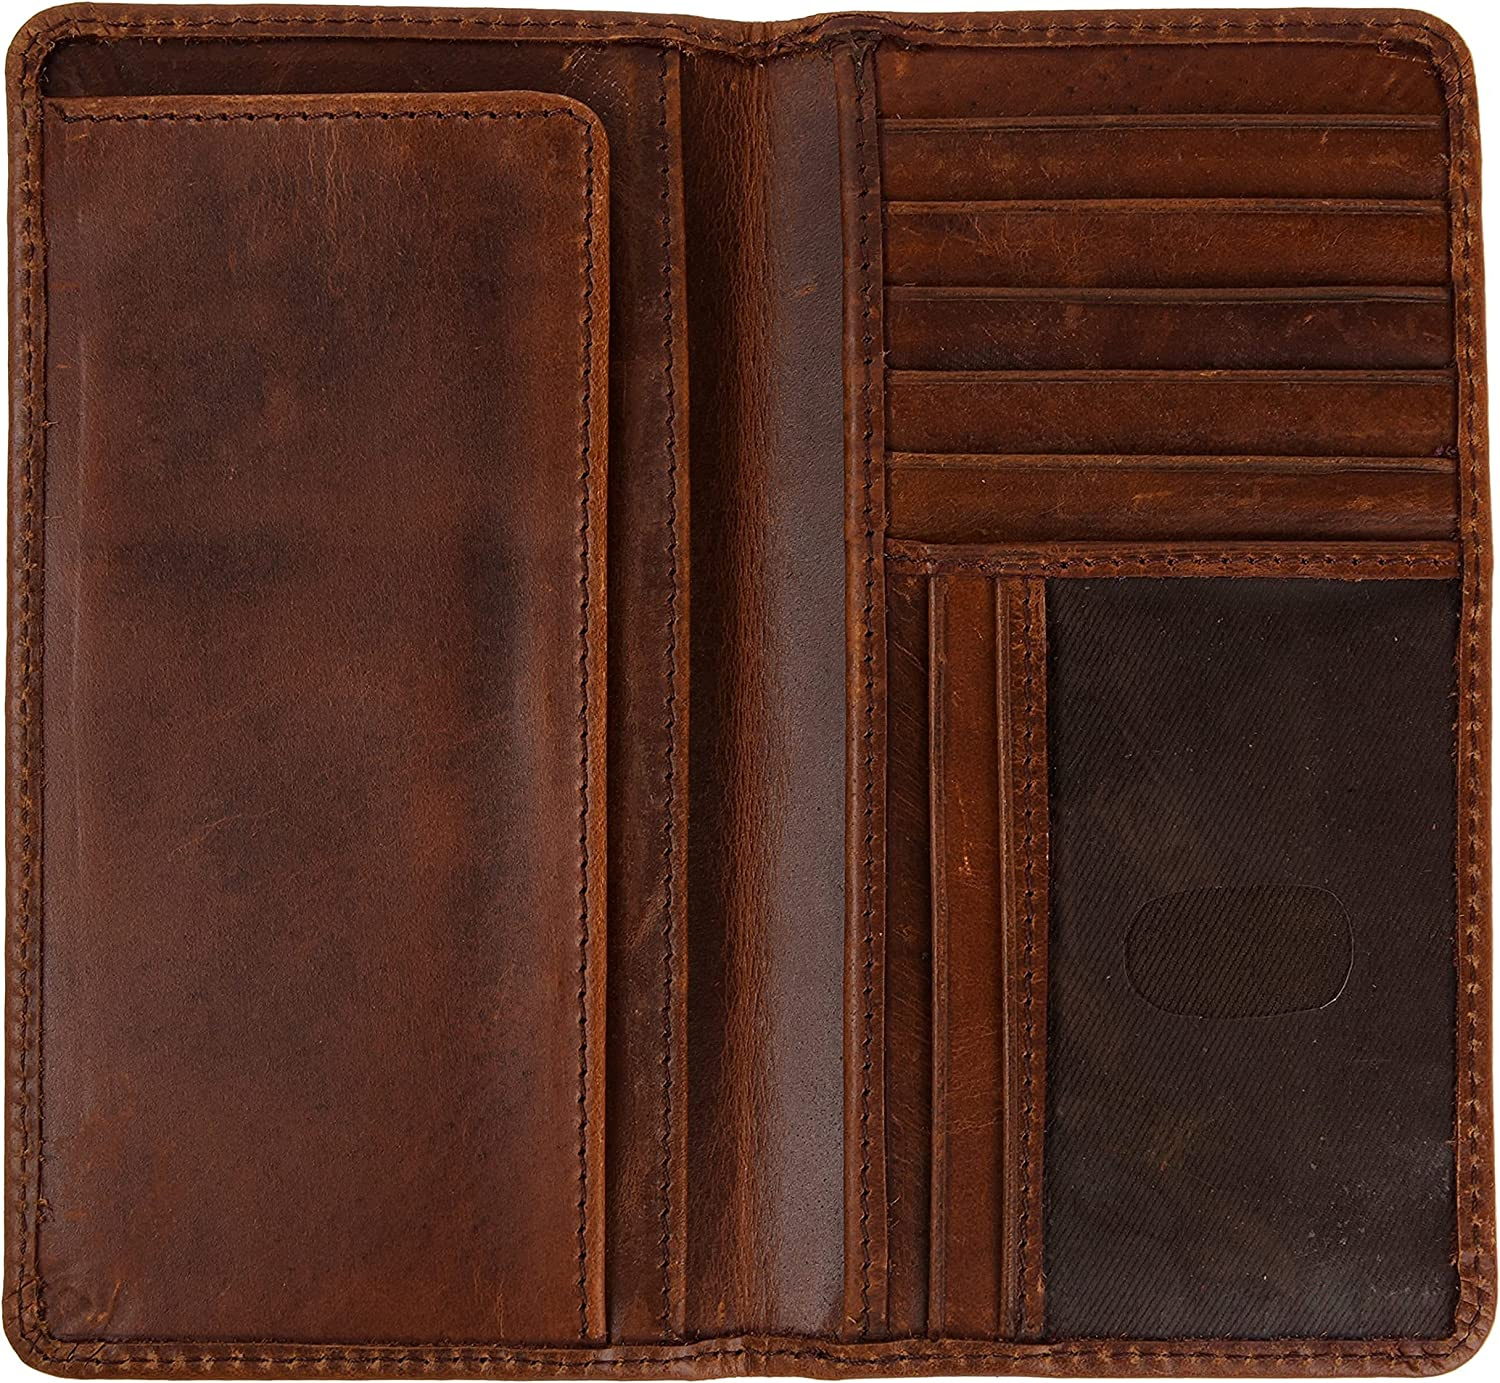 Bifold Top Grain Leather Long Rodeo Wallet Checkbook Card Case Holder For Men